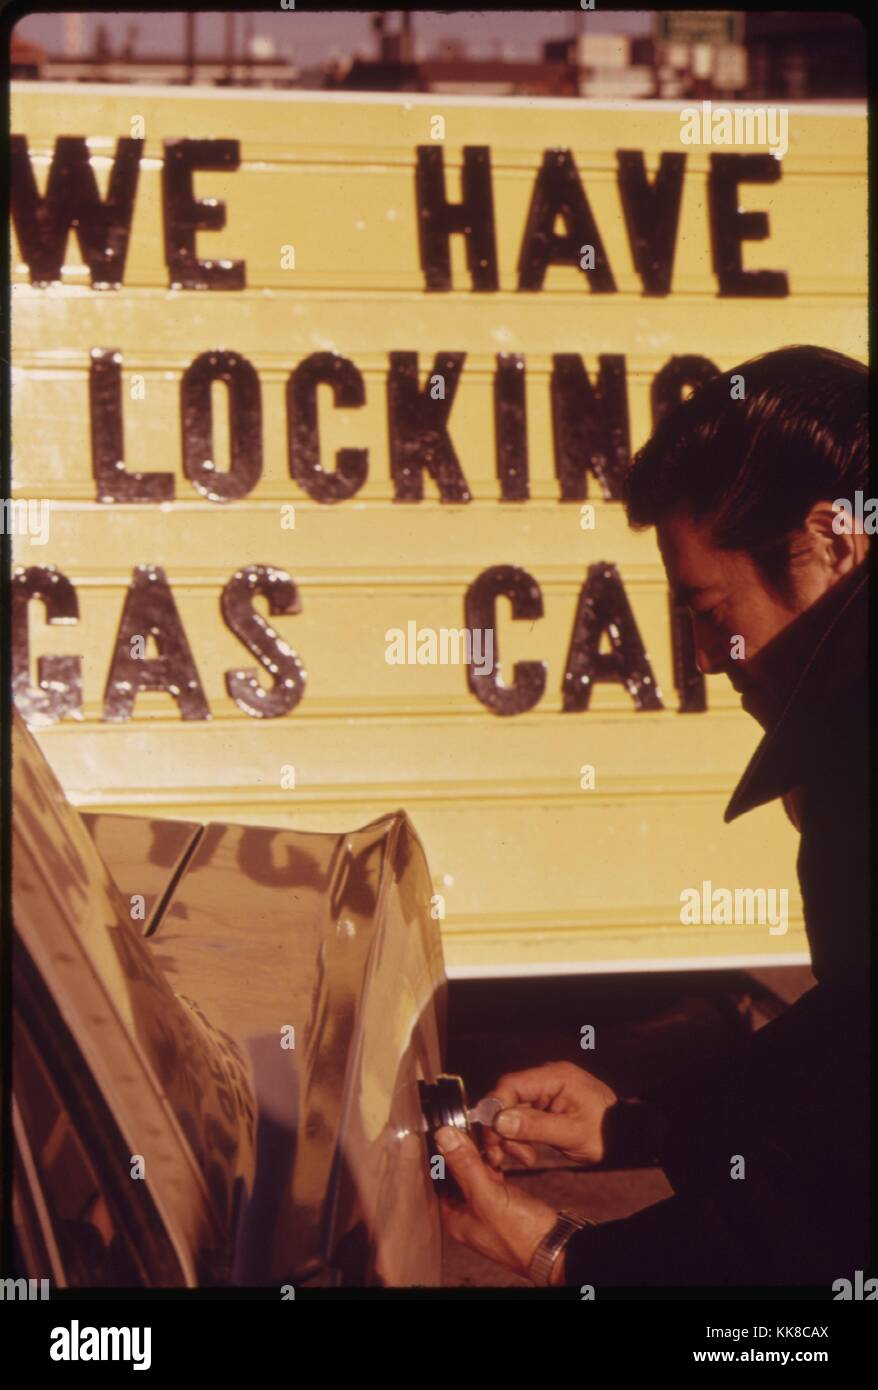 Sales of Gasoline Tank Locks Increased Dramatically During the Fuel Crisis in the Pacific Northwest, and Their Prices - Stock Image